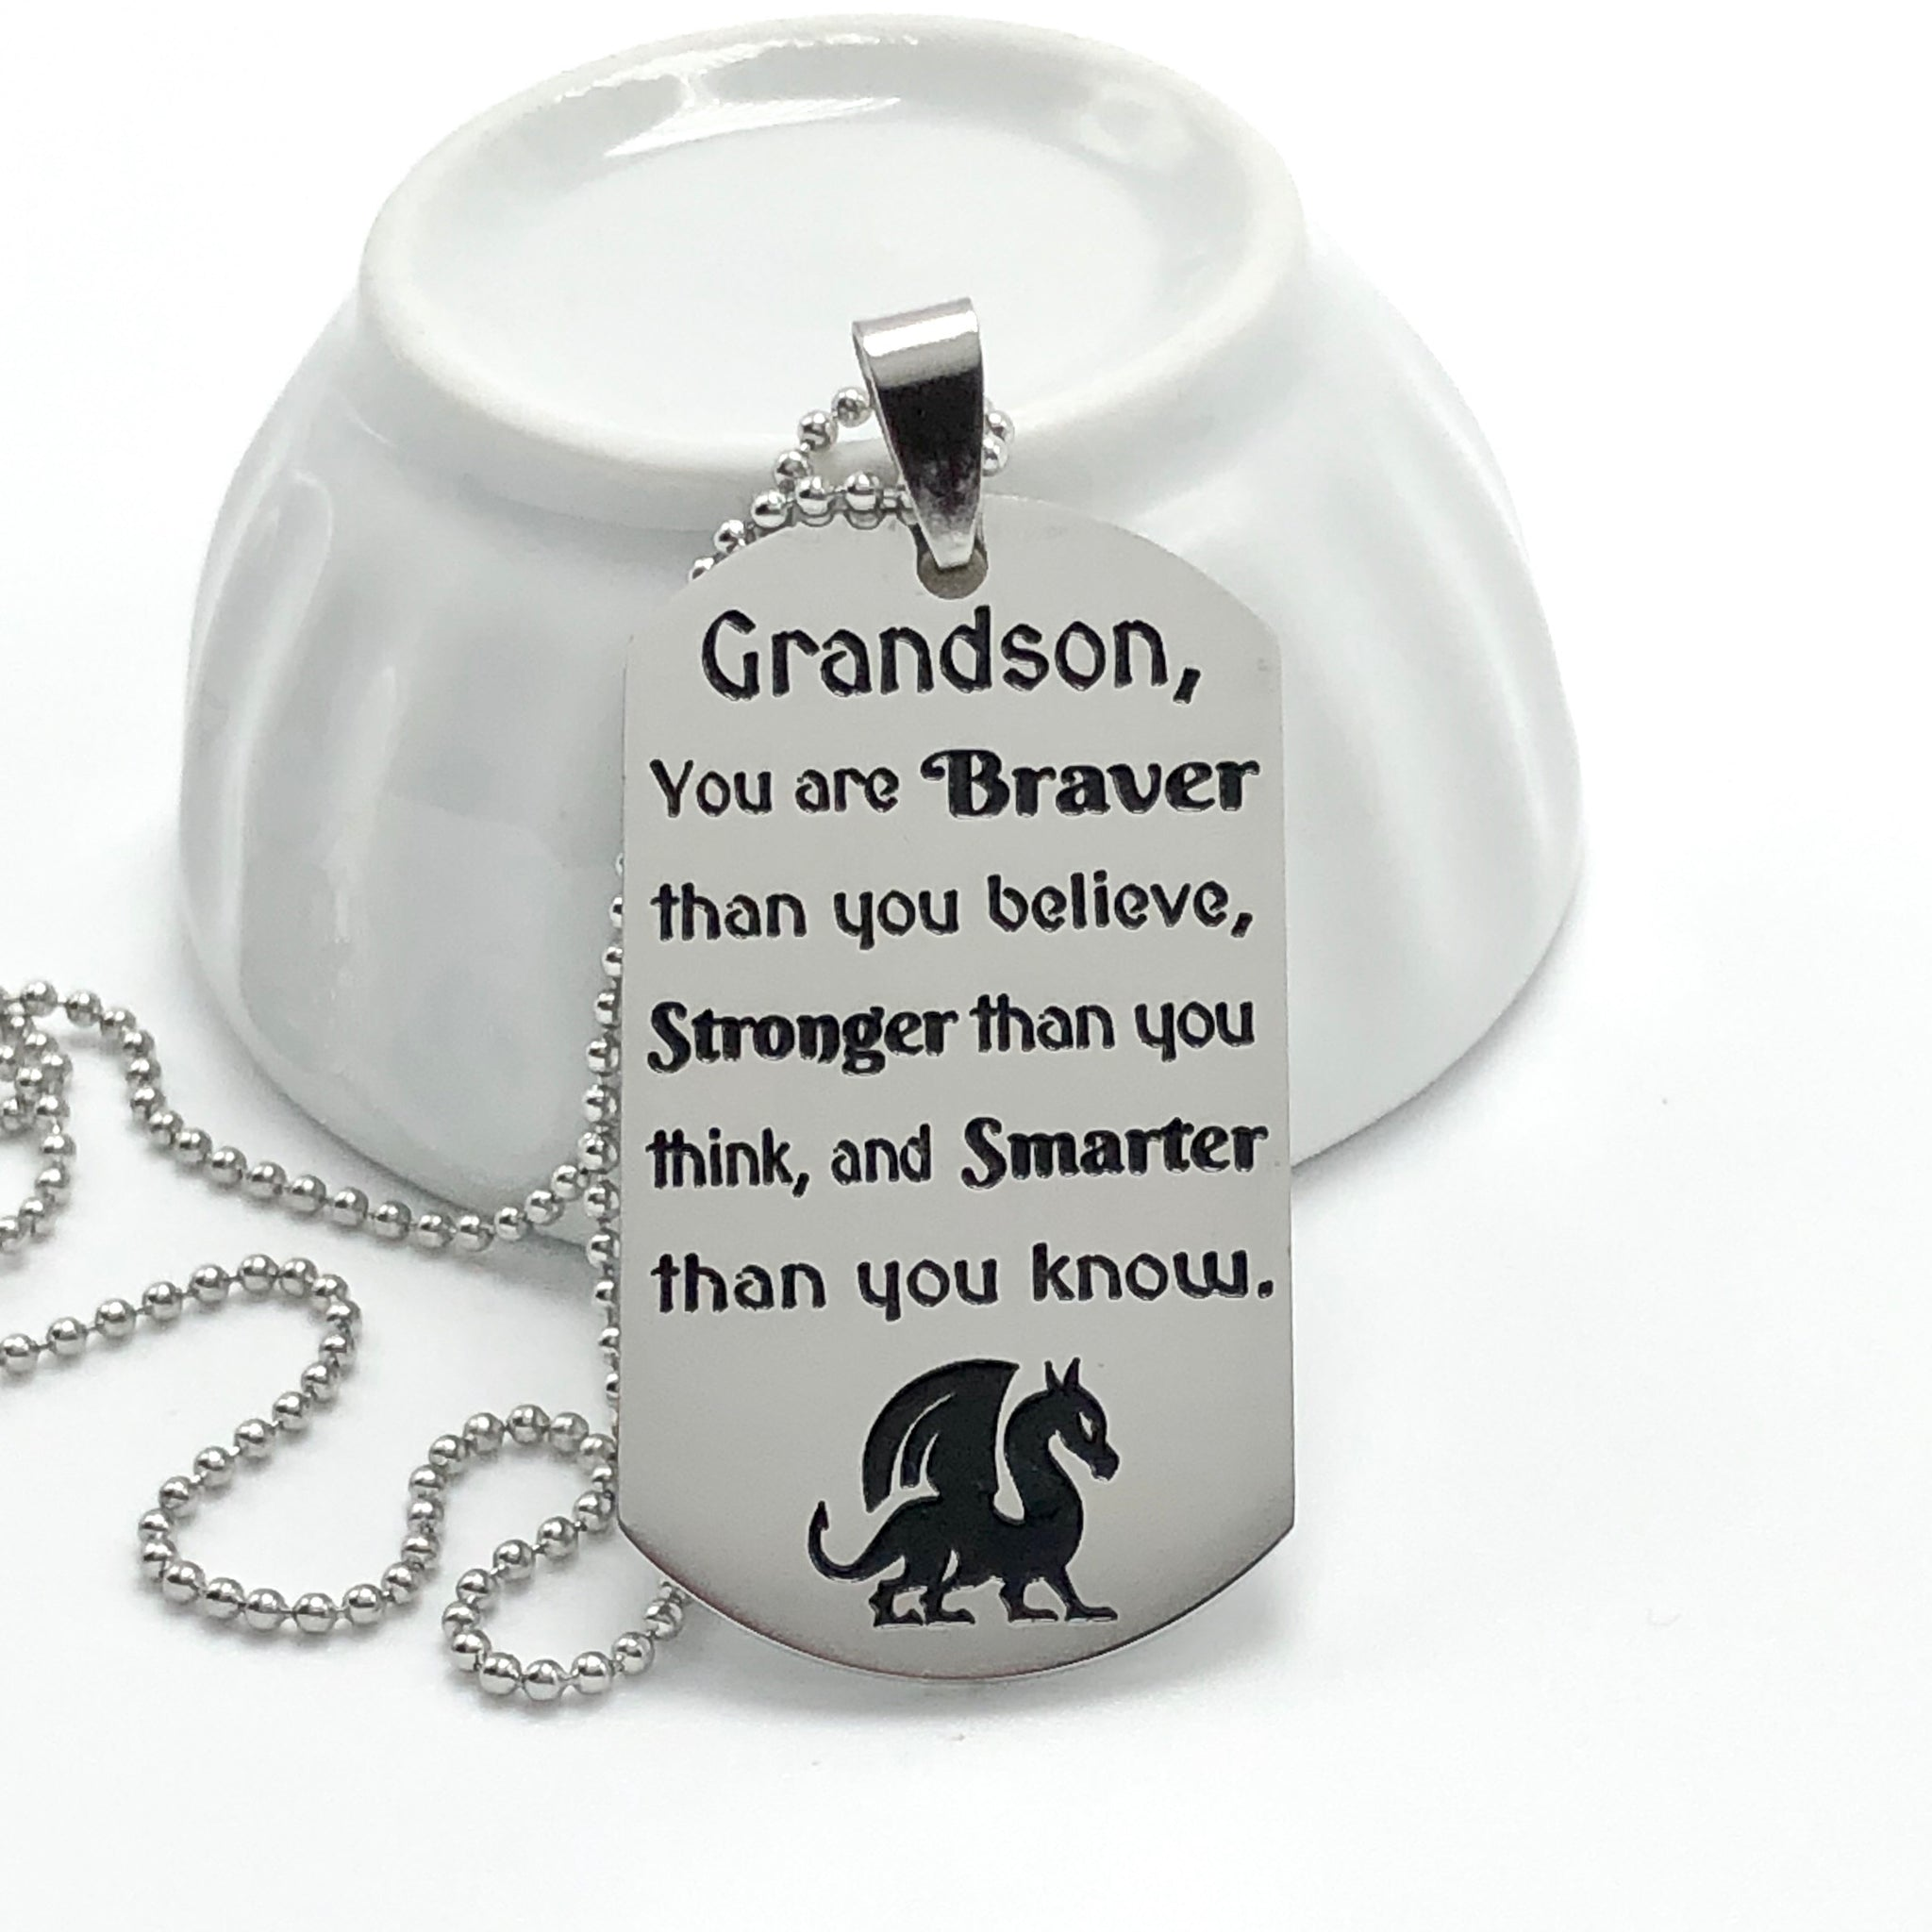 Grandson, you are braver than you believe... - Dogtag Necklace